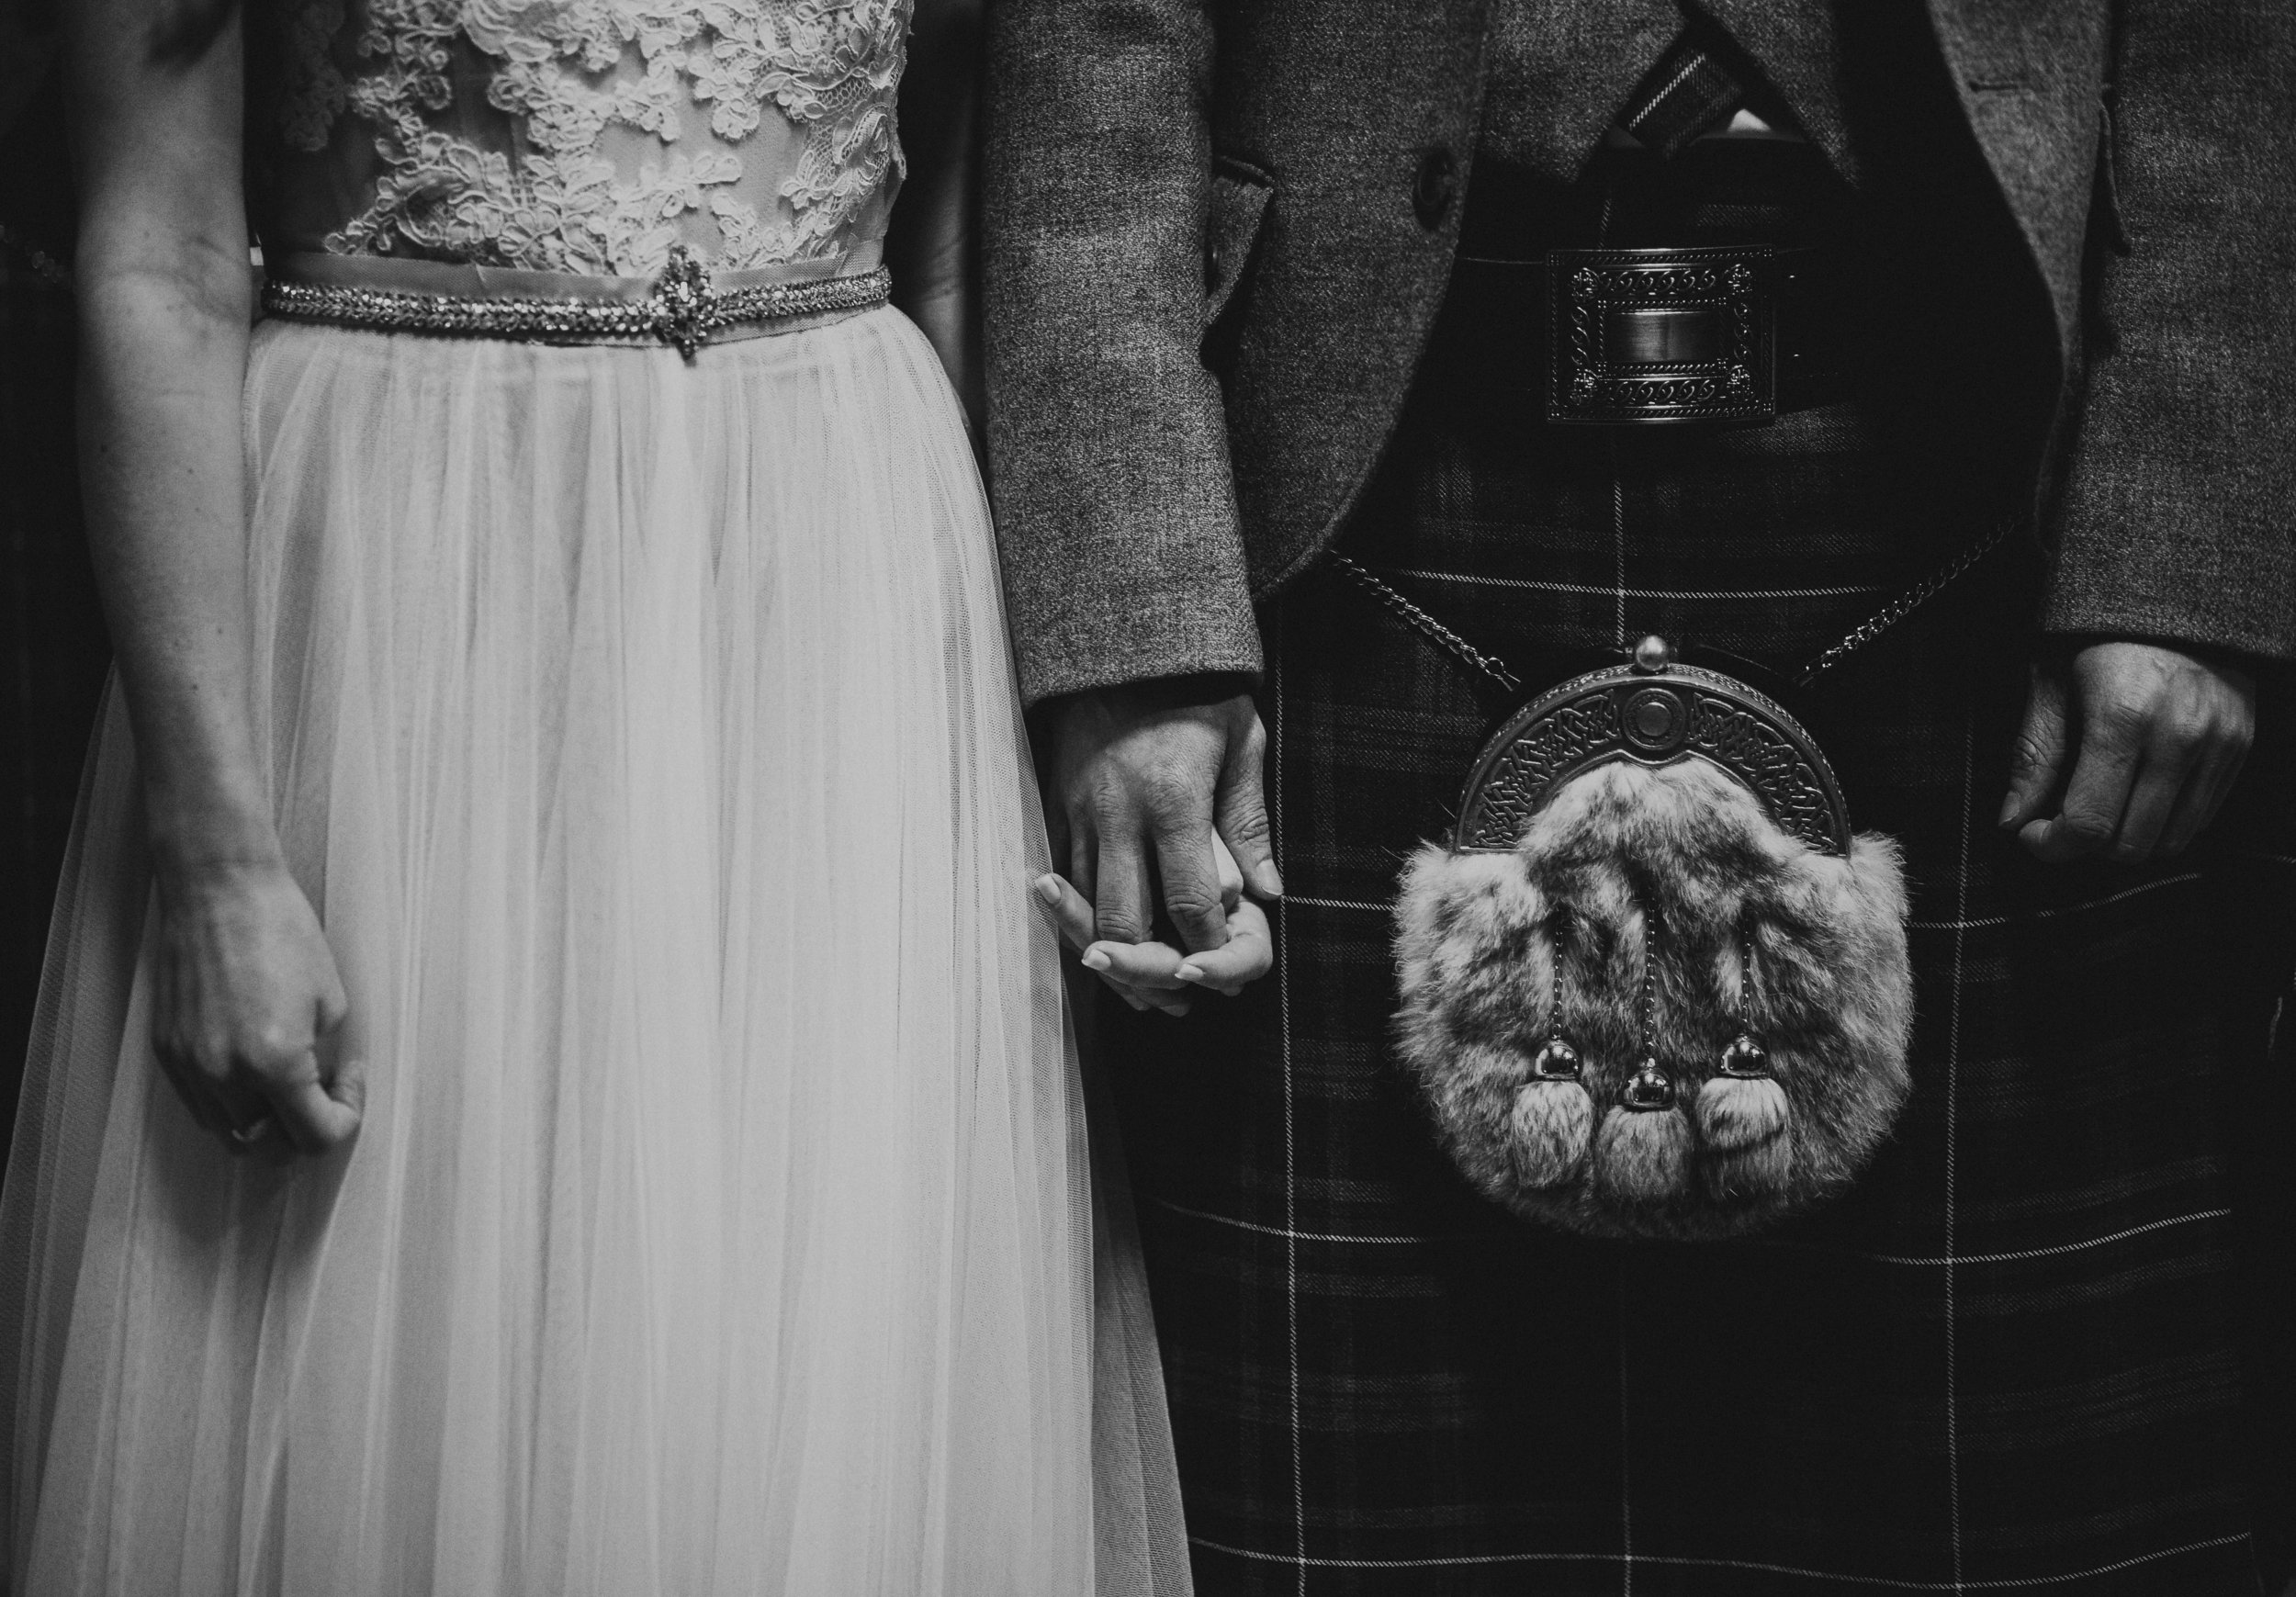 BYRE_AT_INCHYRA_WEDDING_PHOTOGRAPHER_PJ_PHILLIPS_PHOTOGRAPHY_KAYLEIGH_ANDREW_83.jpg